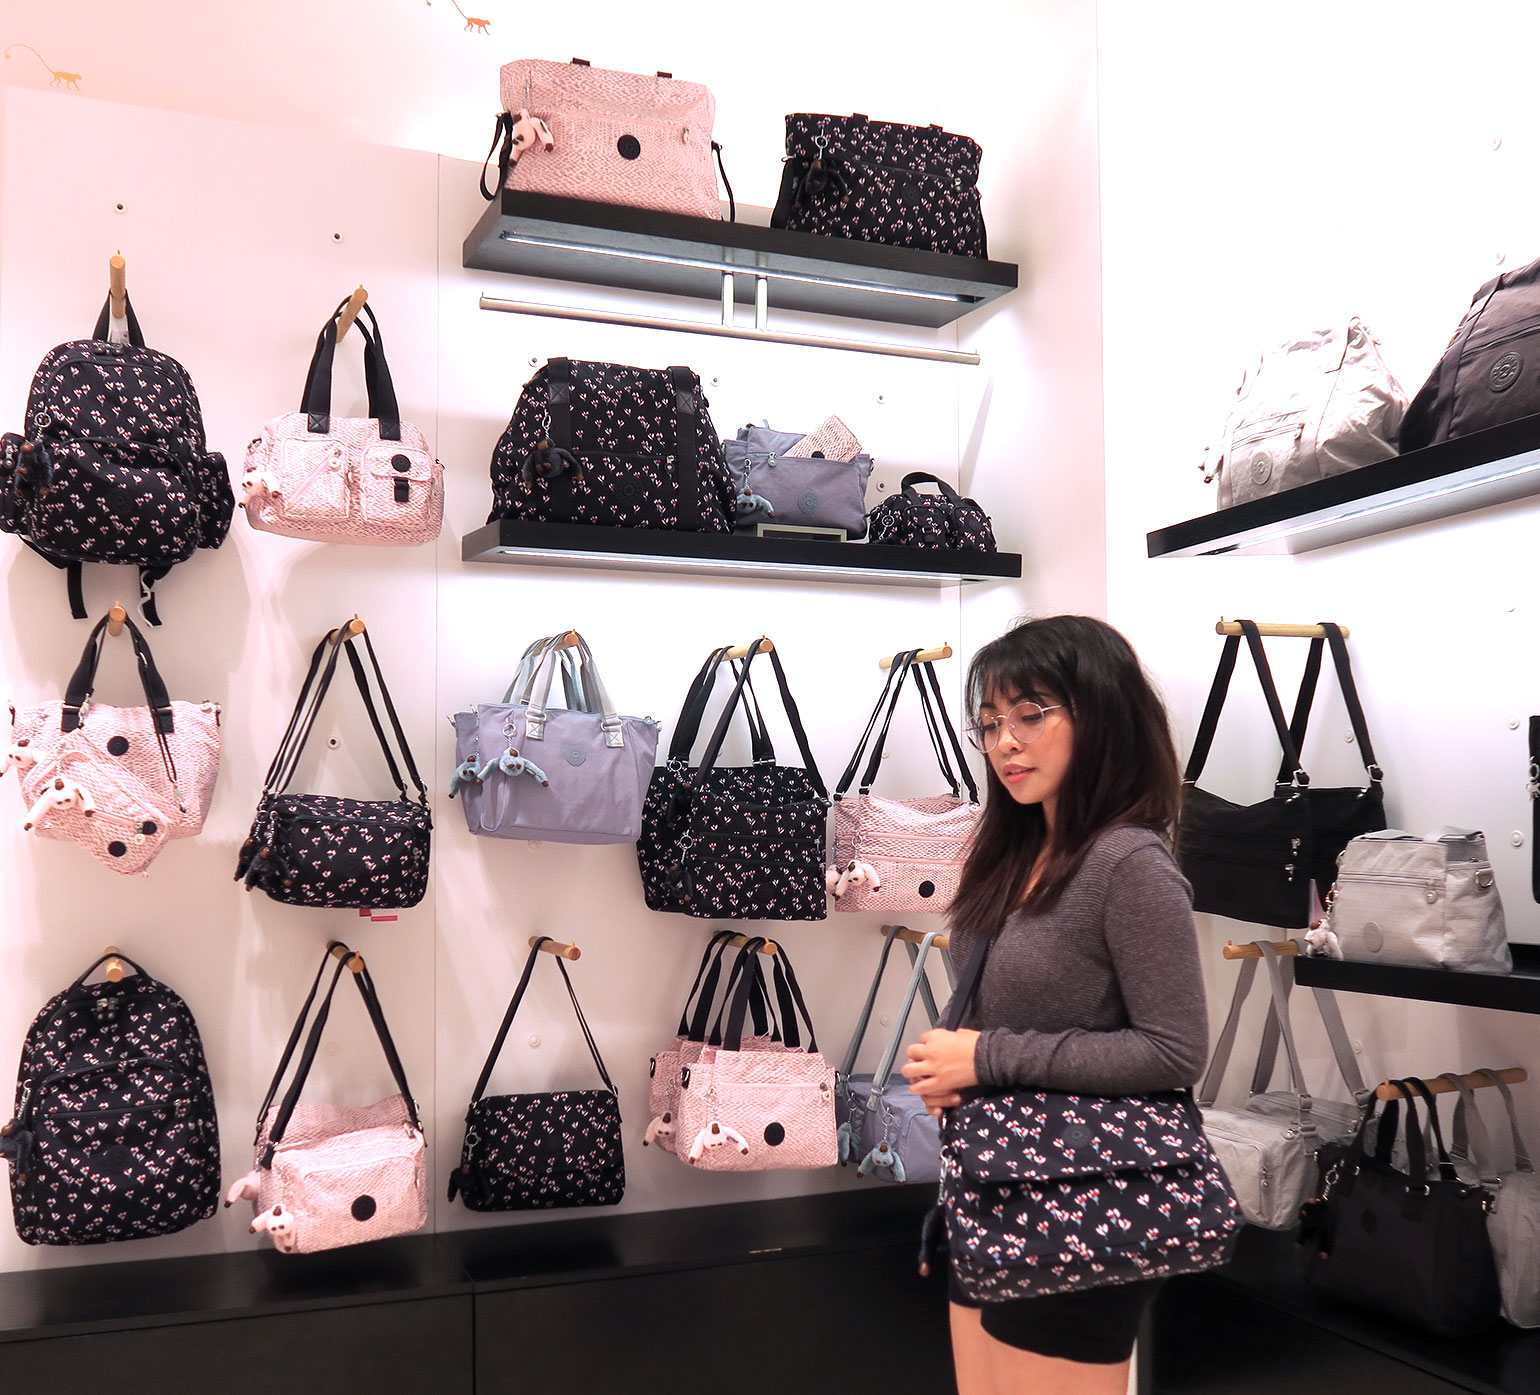 10 Kipling Philippines 30 years - Uptown Mall - Dream Garden Collection - Gen-zel.com(c)